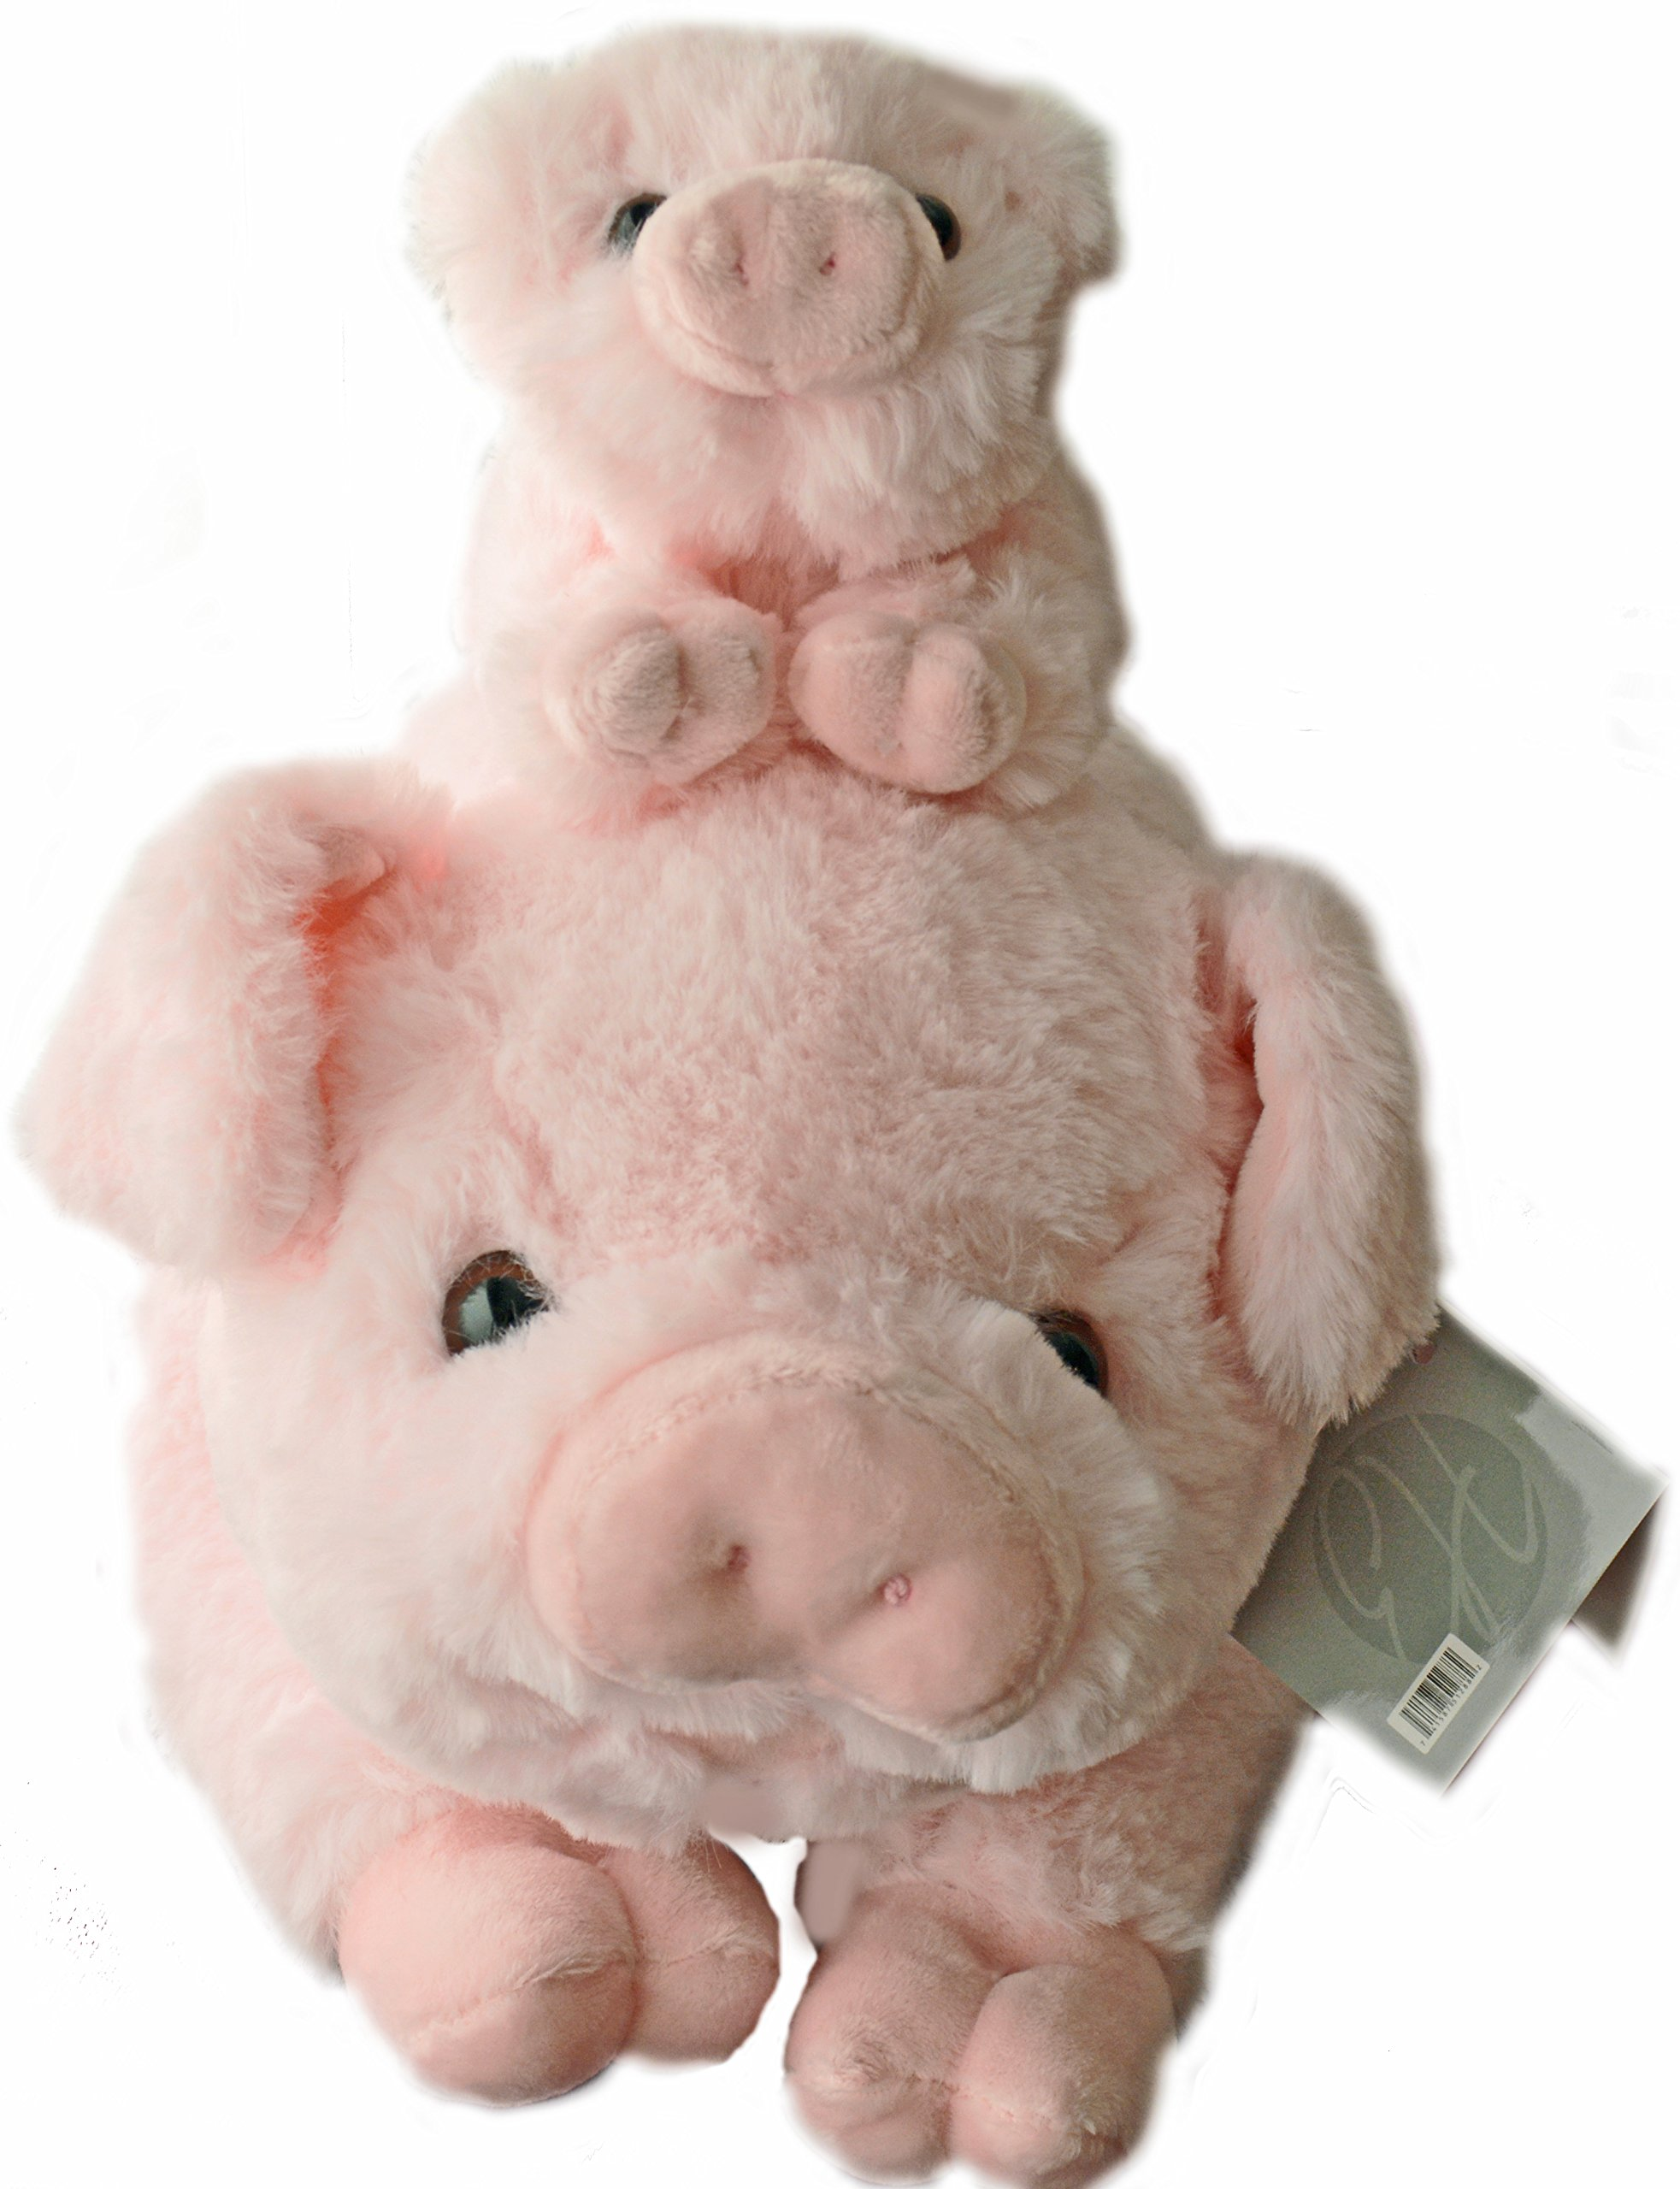 Exceptional Home Pigs Plush Stuffed Animals Set. 18 inch Pig with Baby Piglet. Kids Toys Gift Pig Animal Stuff by Exceptional Home